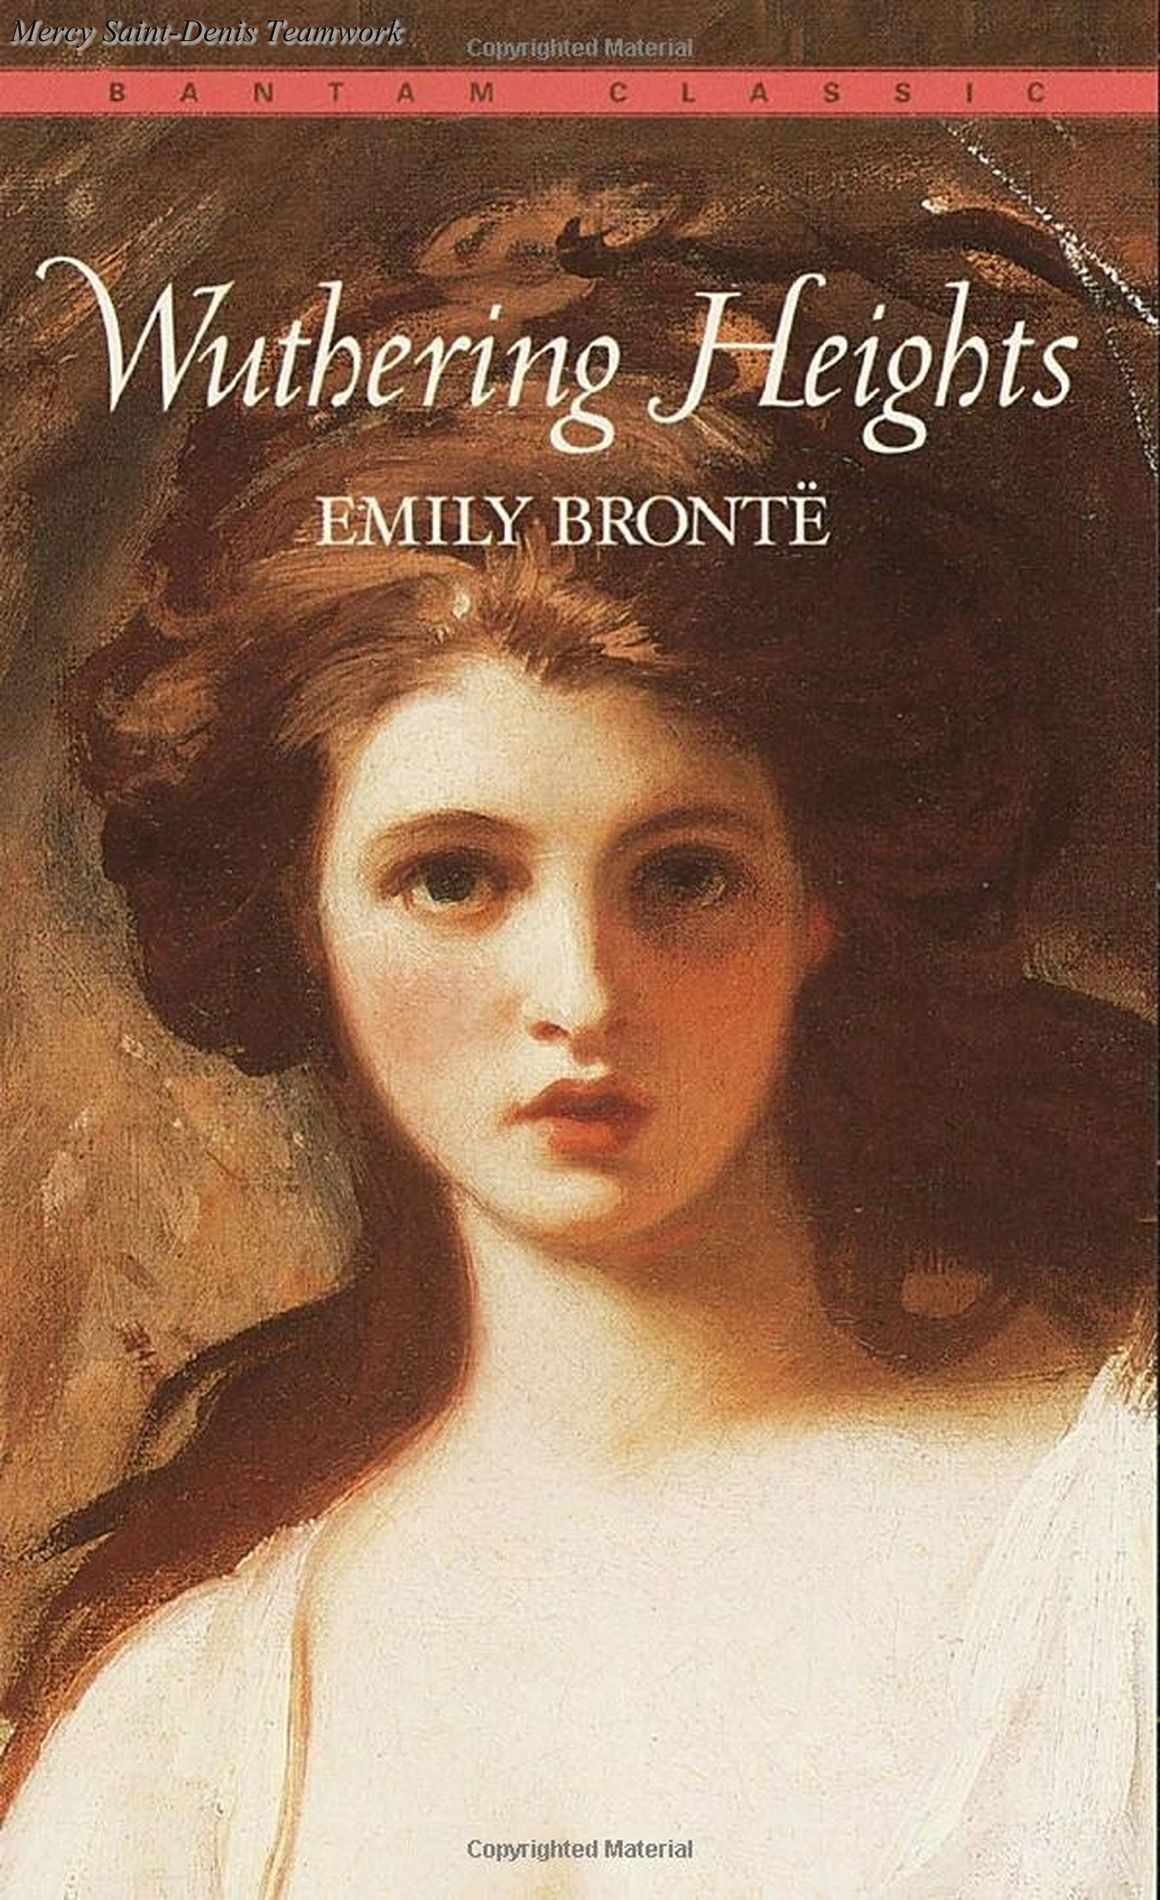 emily bronts wuthering heights a non traditional novel Wuthering heights by emily bronte - wuthering heights, written by emily bronte, has 323 pages the genre of wuthering heights is realistic fiction, and it is a romantic novel.